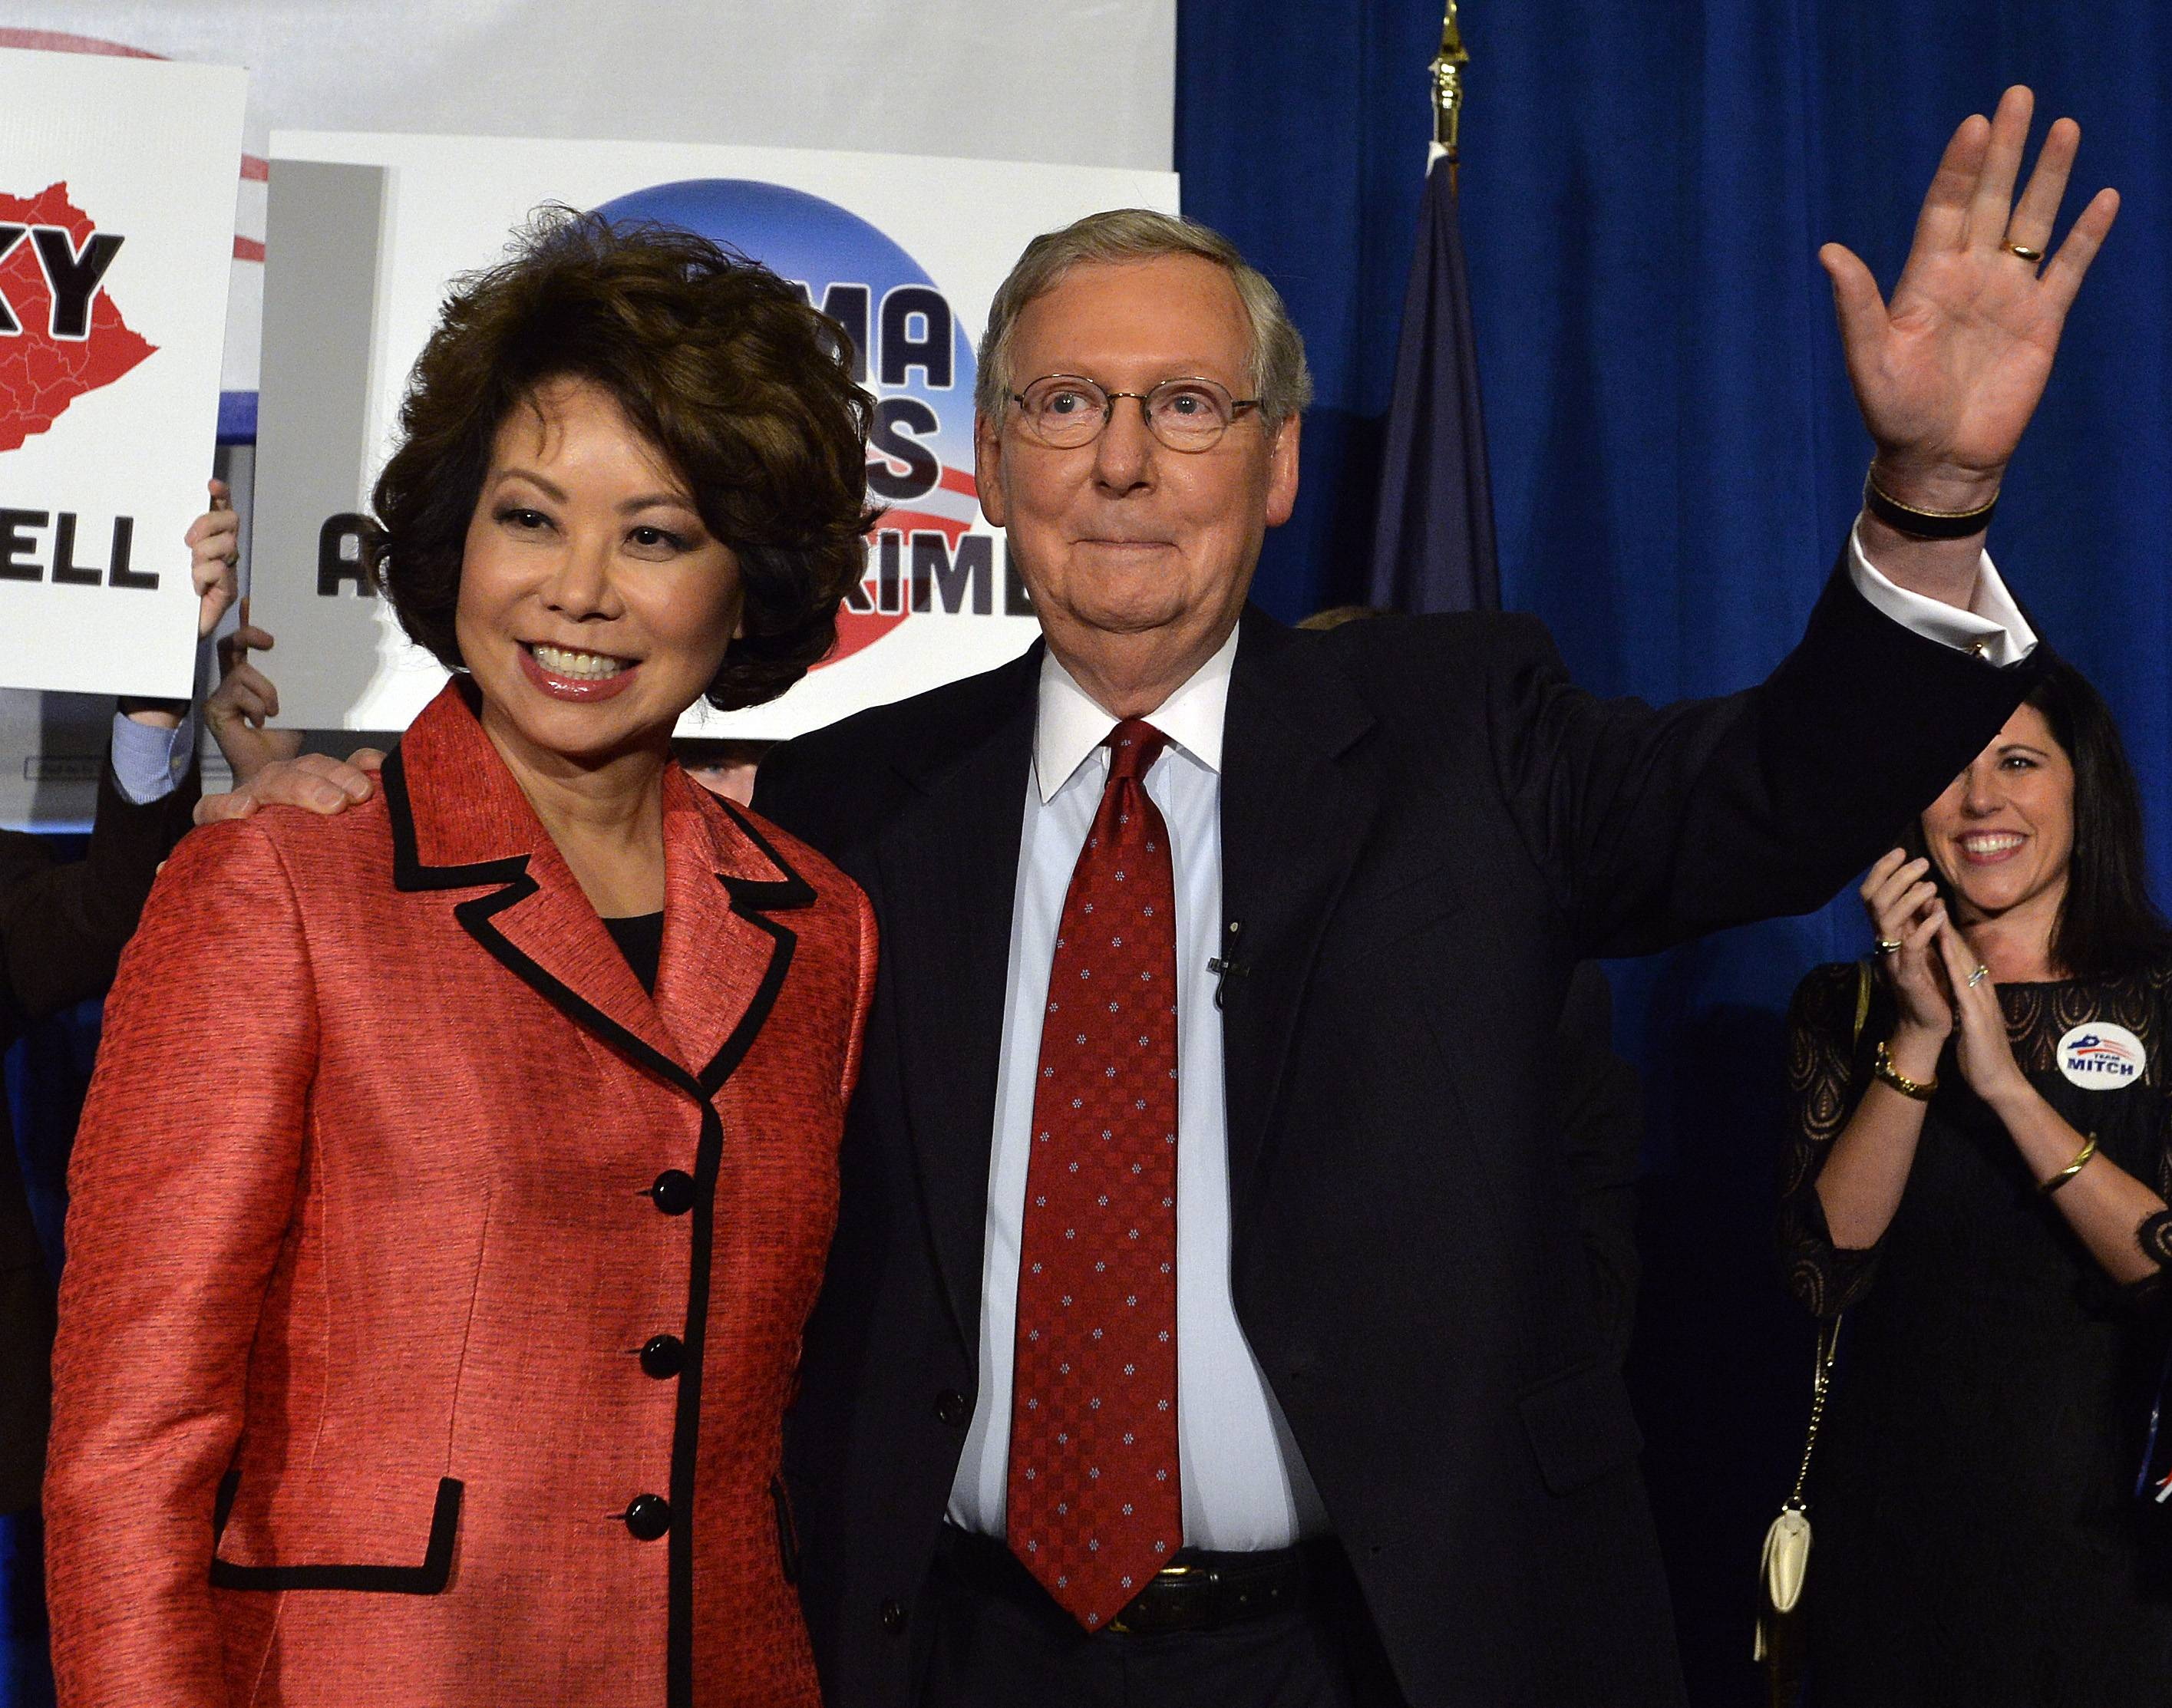 Kentucky Senator Mitch McConnell, right, and his wife Elaine Chao wave to his supporters following his victory in the republican primary Tuesday, May 20, McConnell, R-Ky., is nobody's example of a tea party Republican.